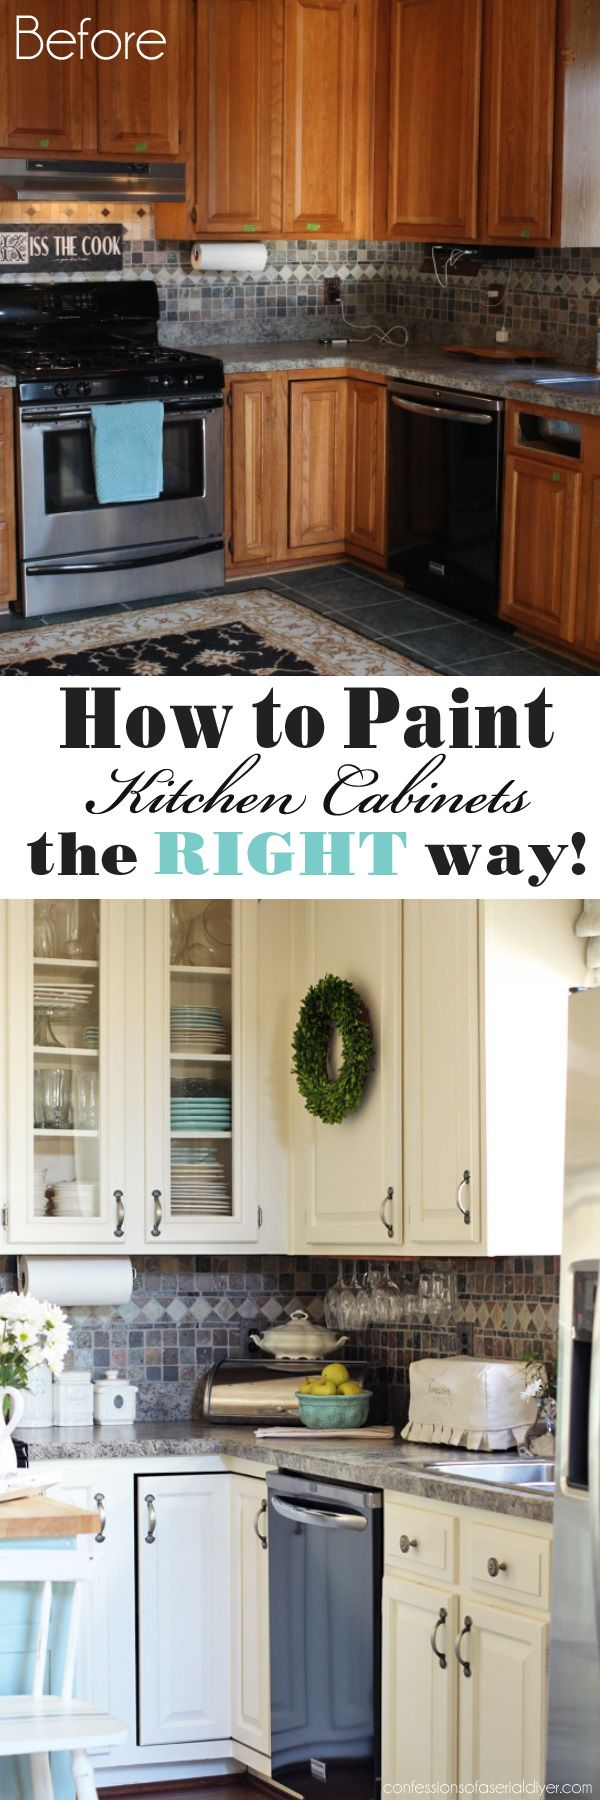 best 25 diy kitchen cabinets ideas on pinterest small With best brand of paint for kitchen cabinets with recycle sticker for trash can